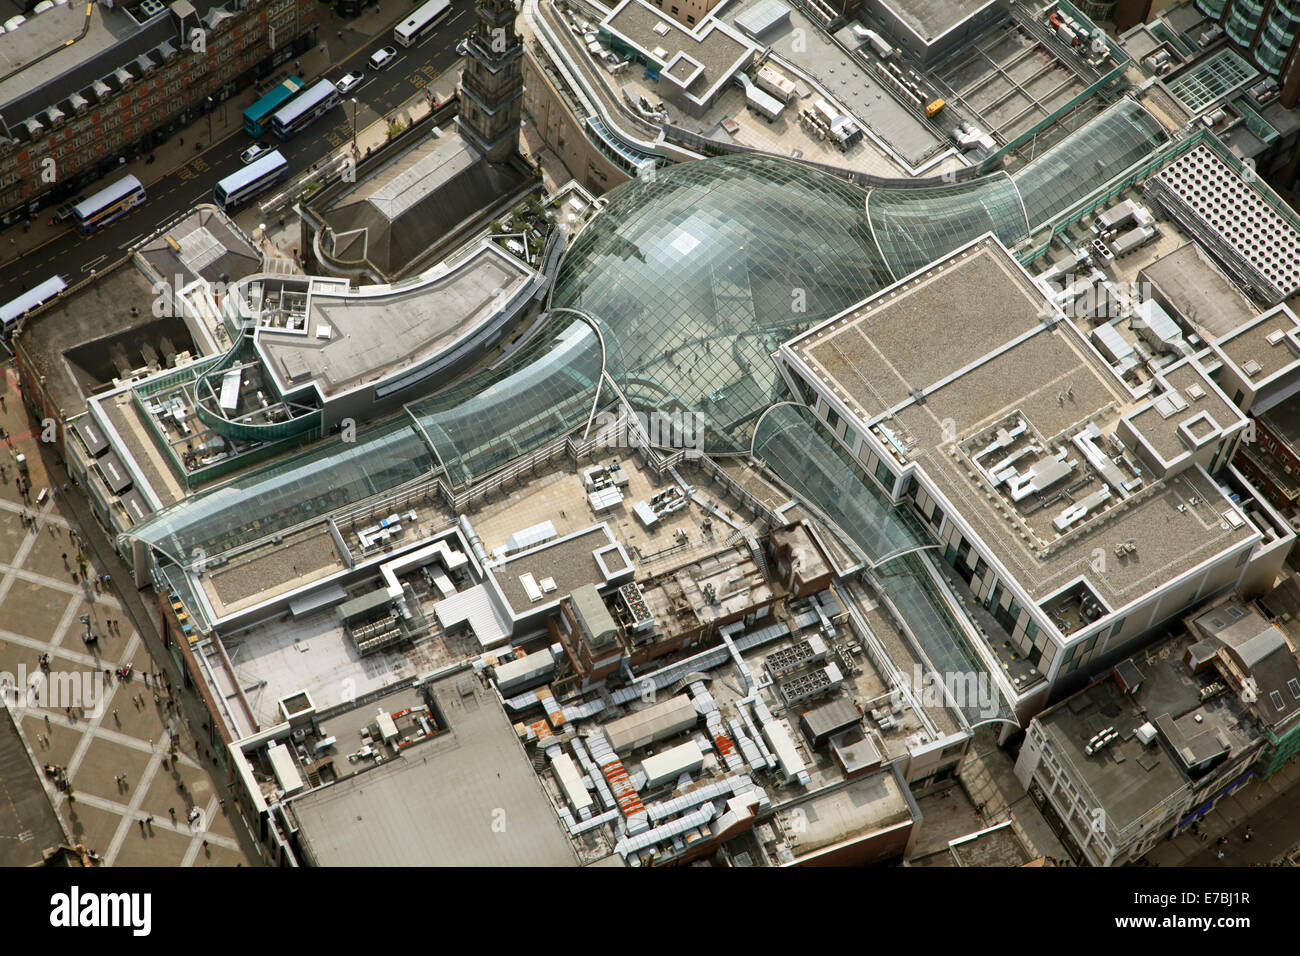 aerial view of the Trinity Leeds shopping centre, West Yorkshire, UK - Stock Image